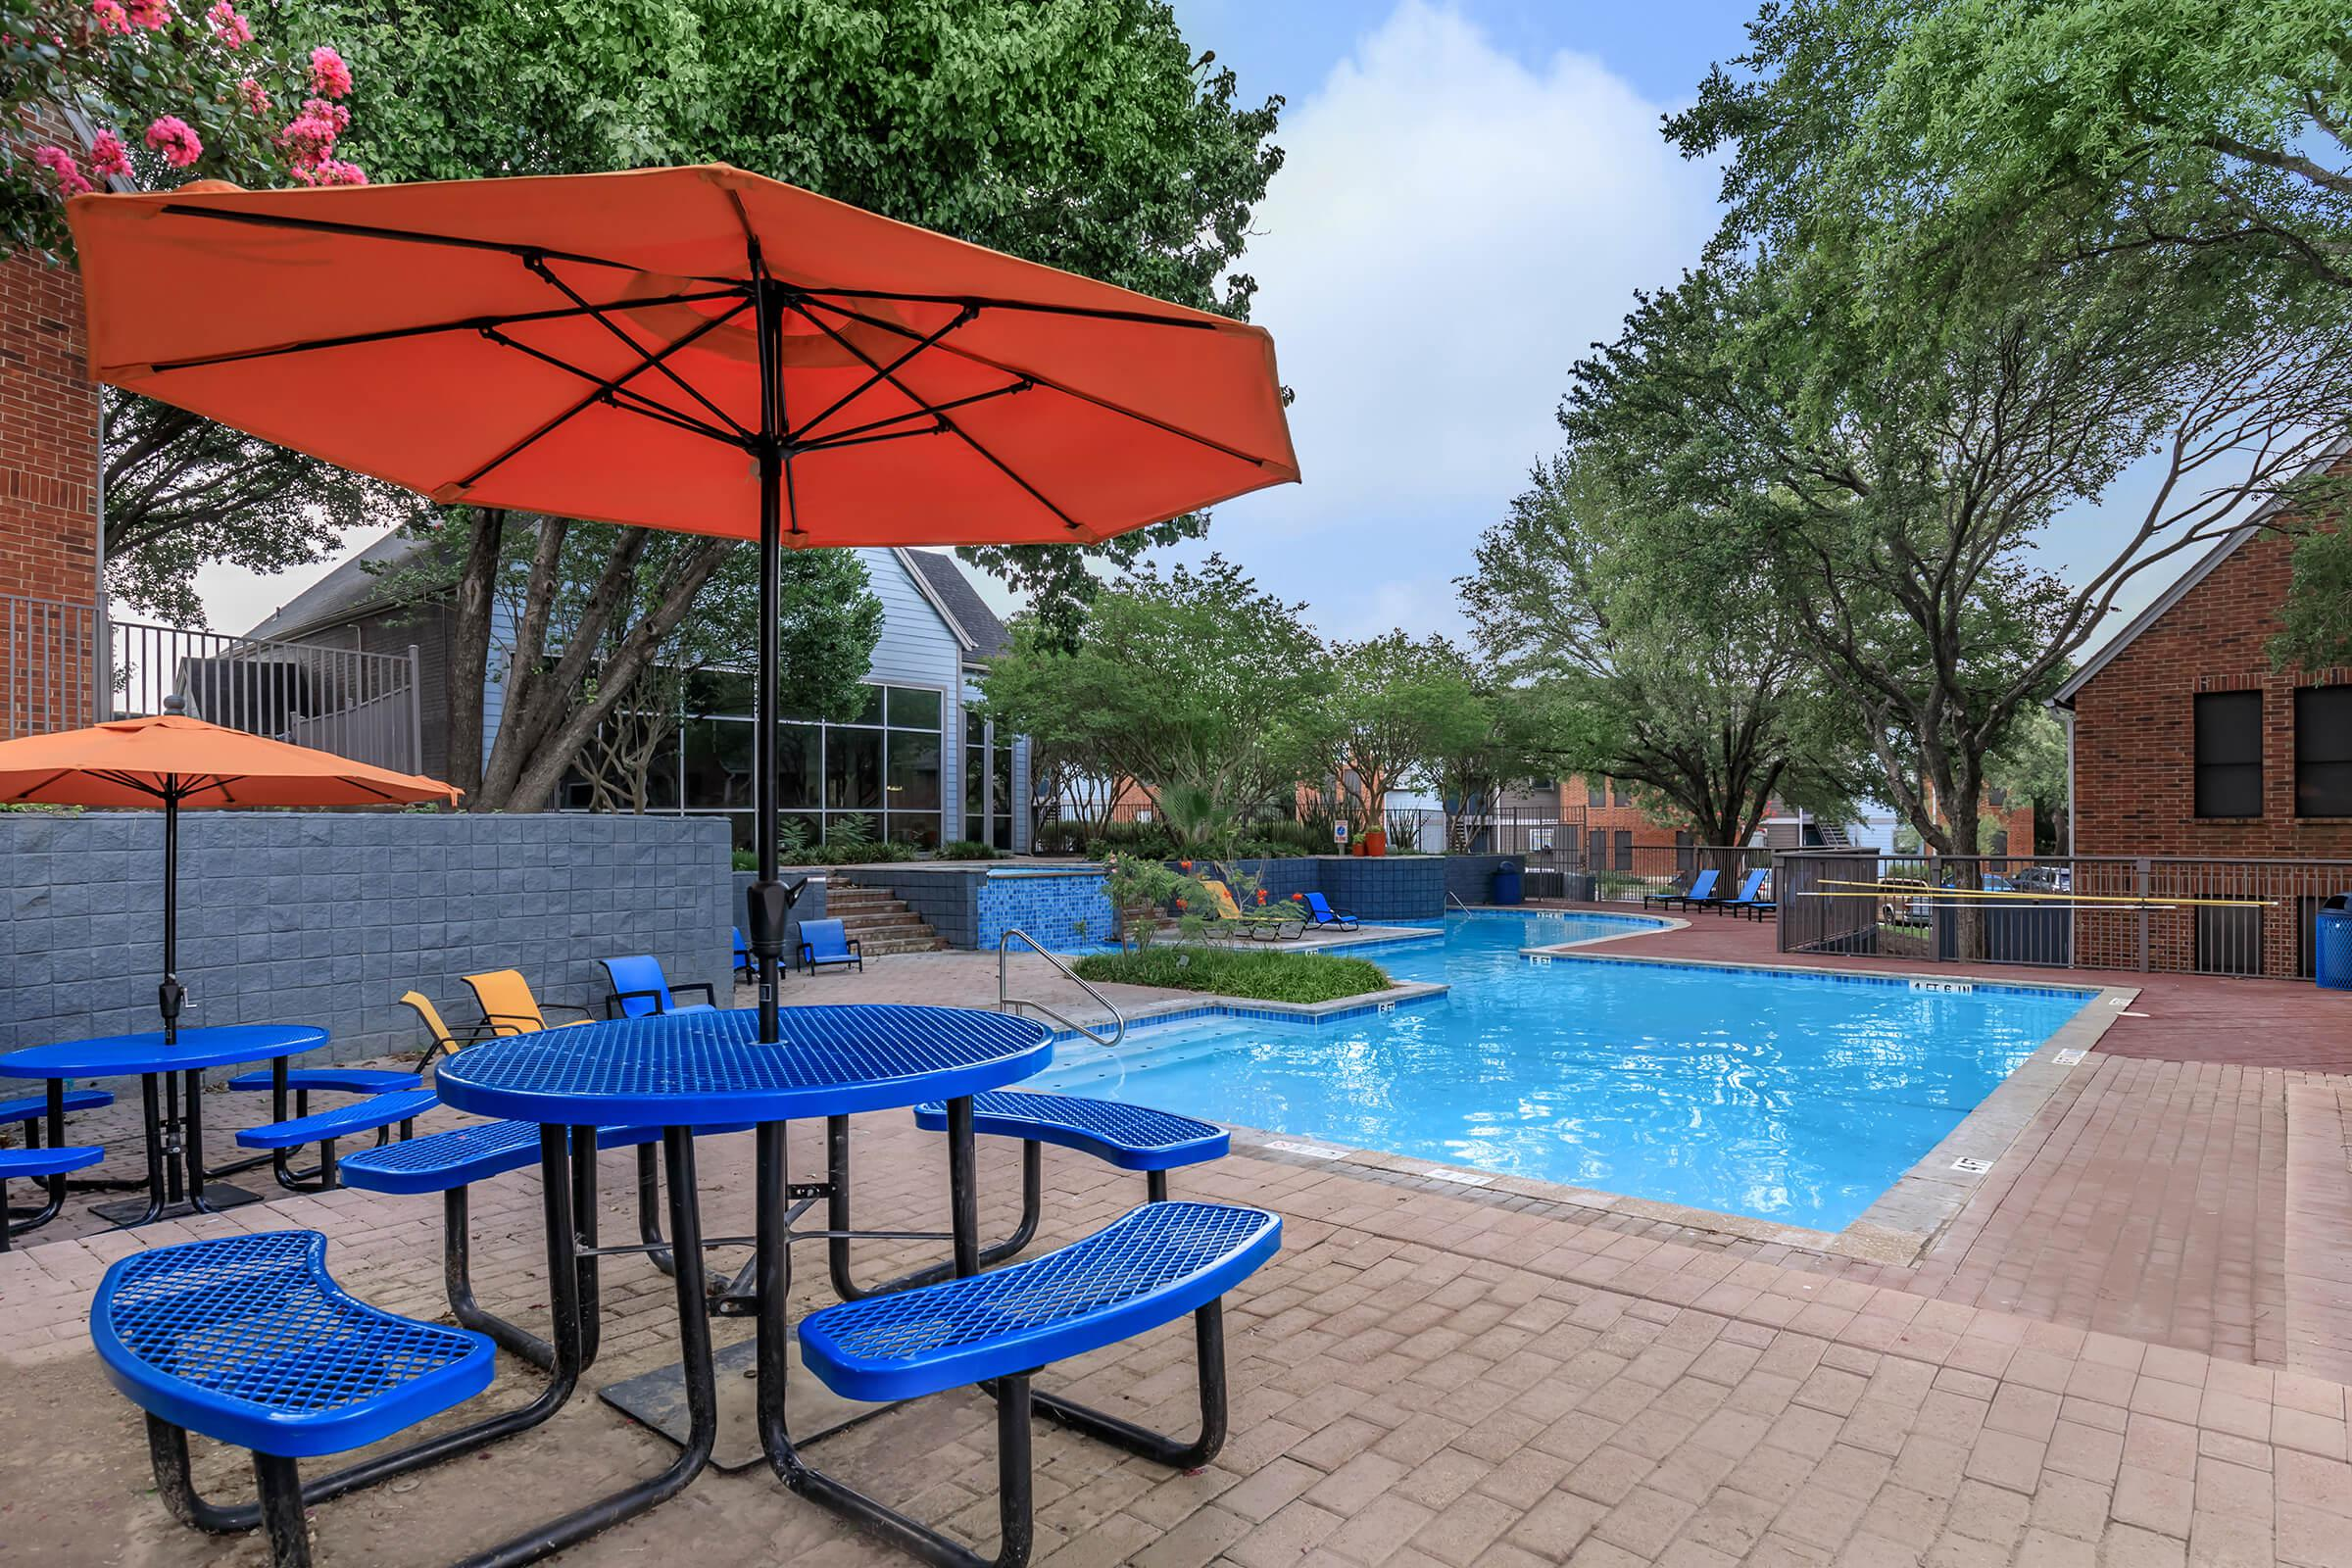 a row of lawn chairs sitting on a pool table with a blue umbrella